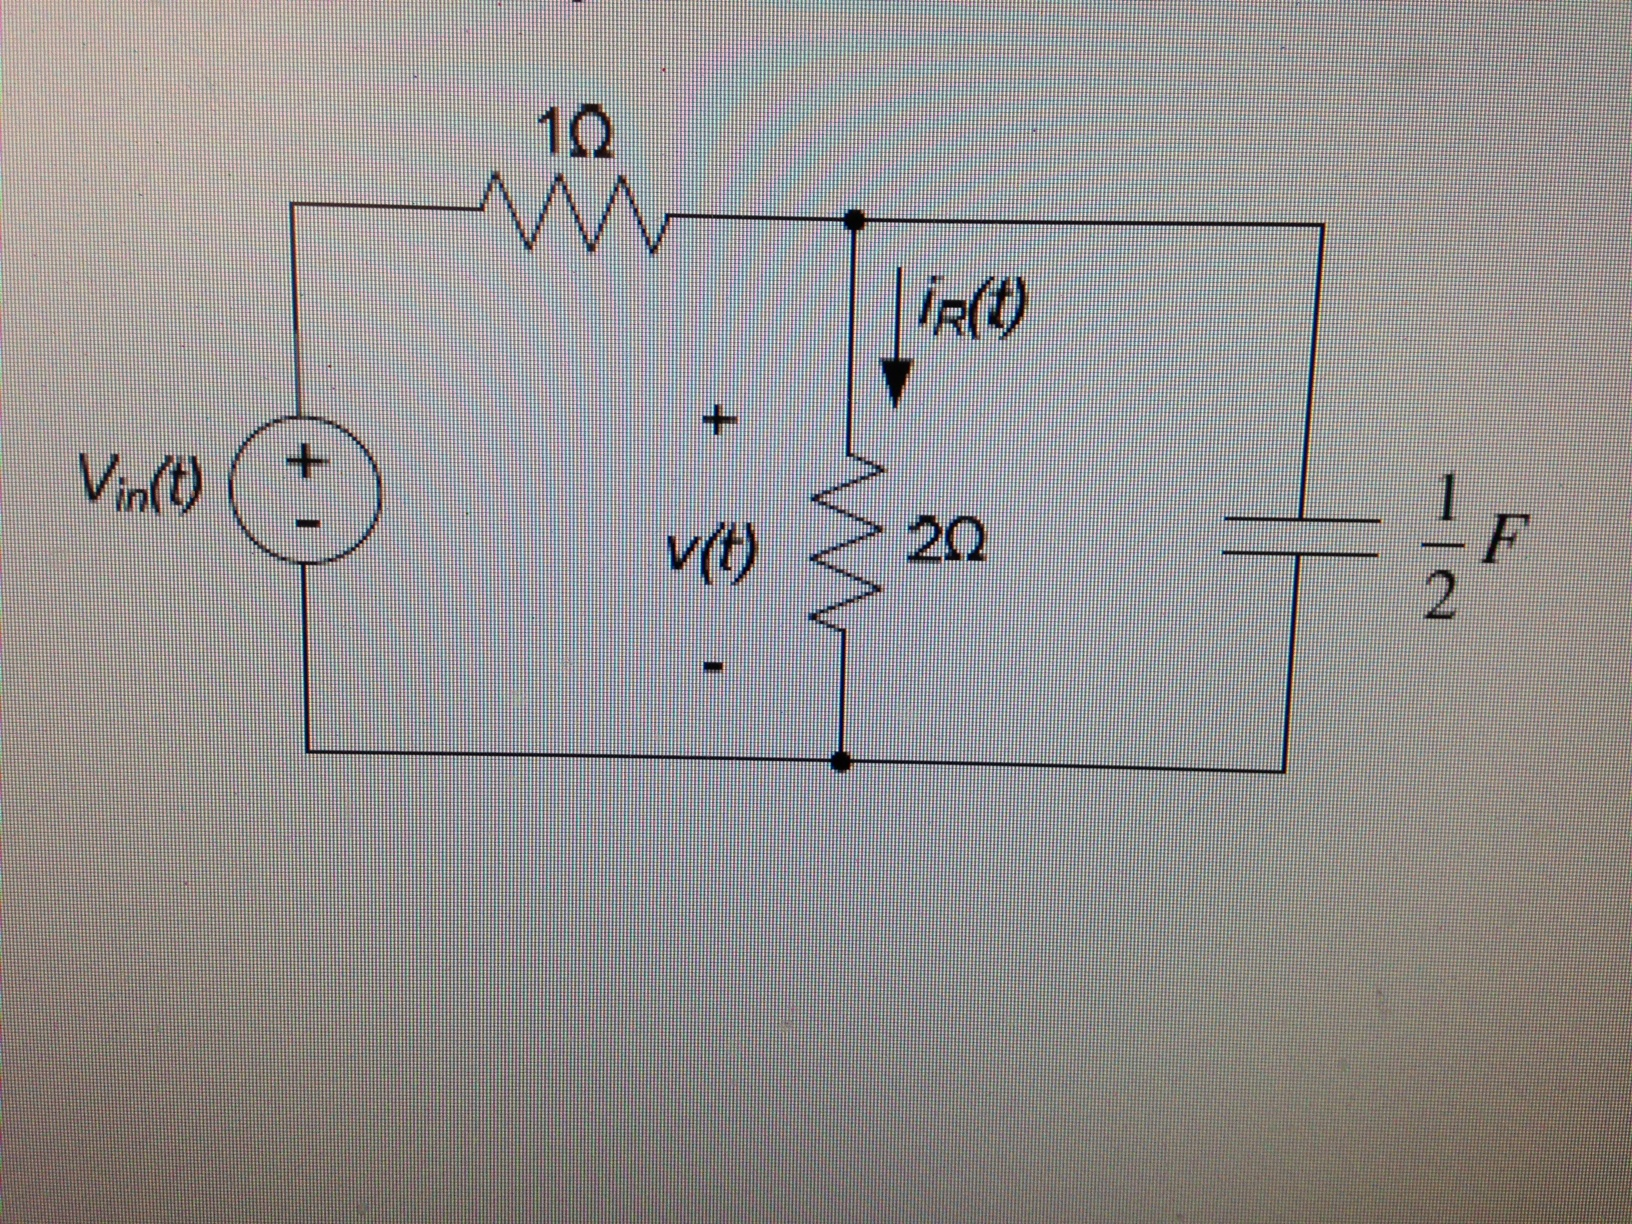 For the circuit below, sketch the magnitude and ph